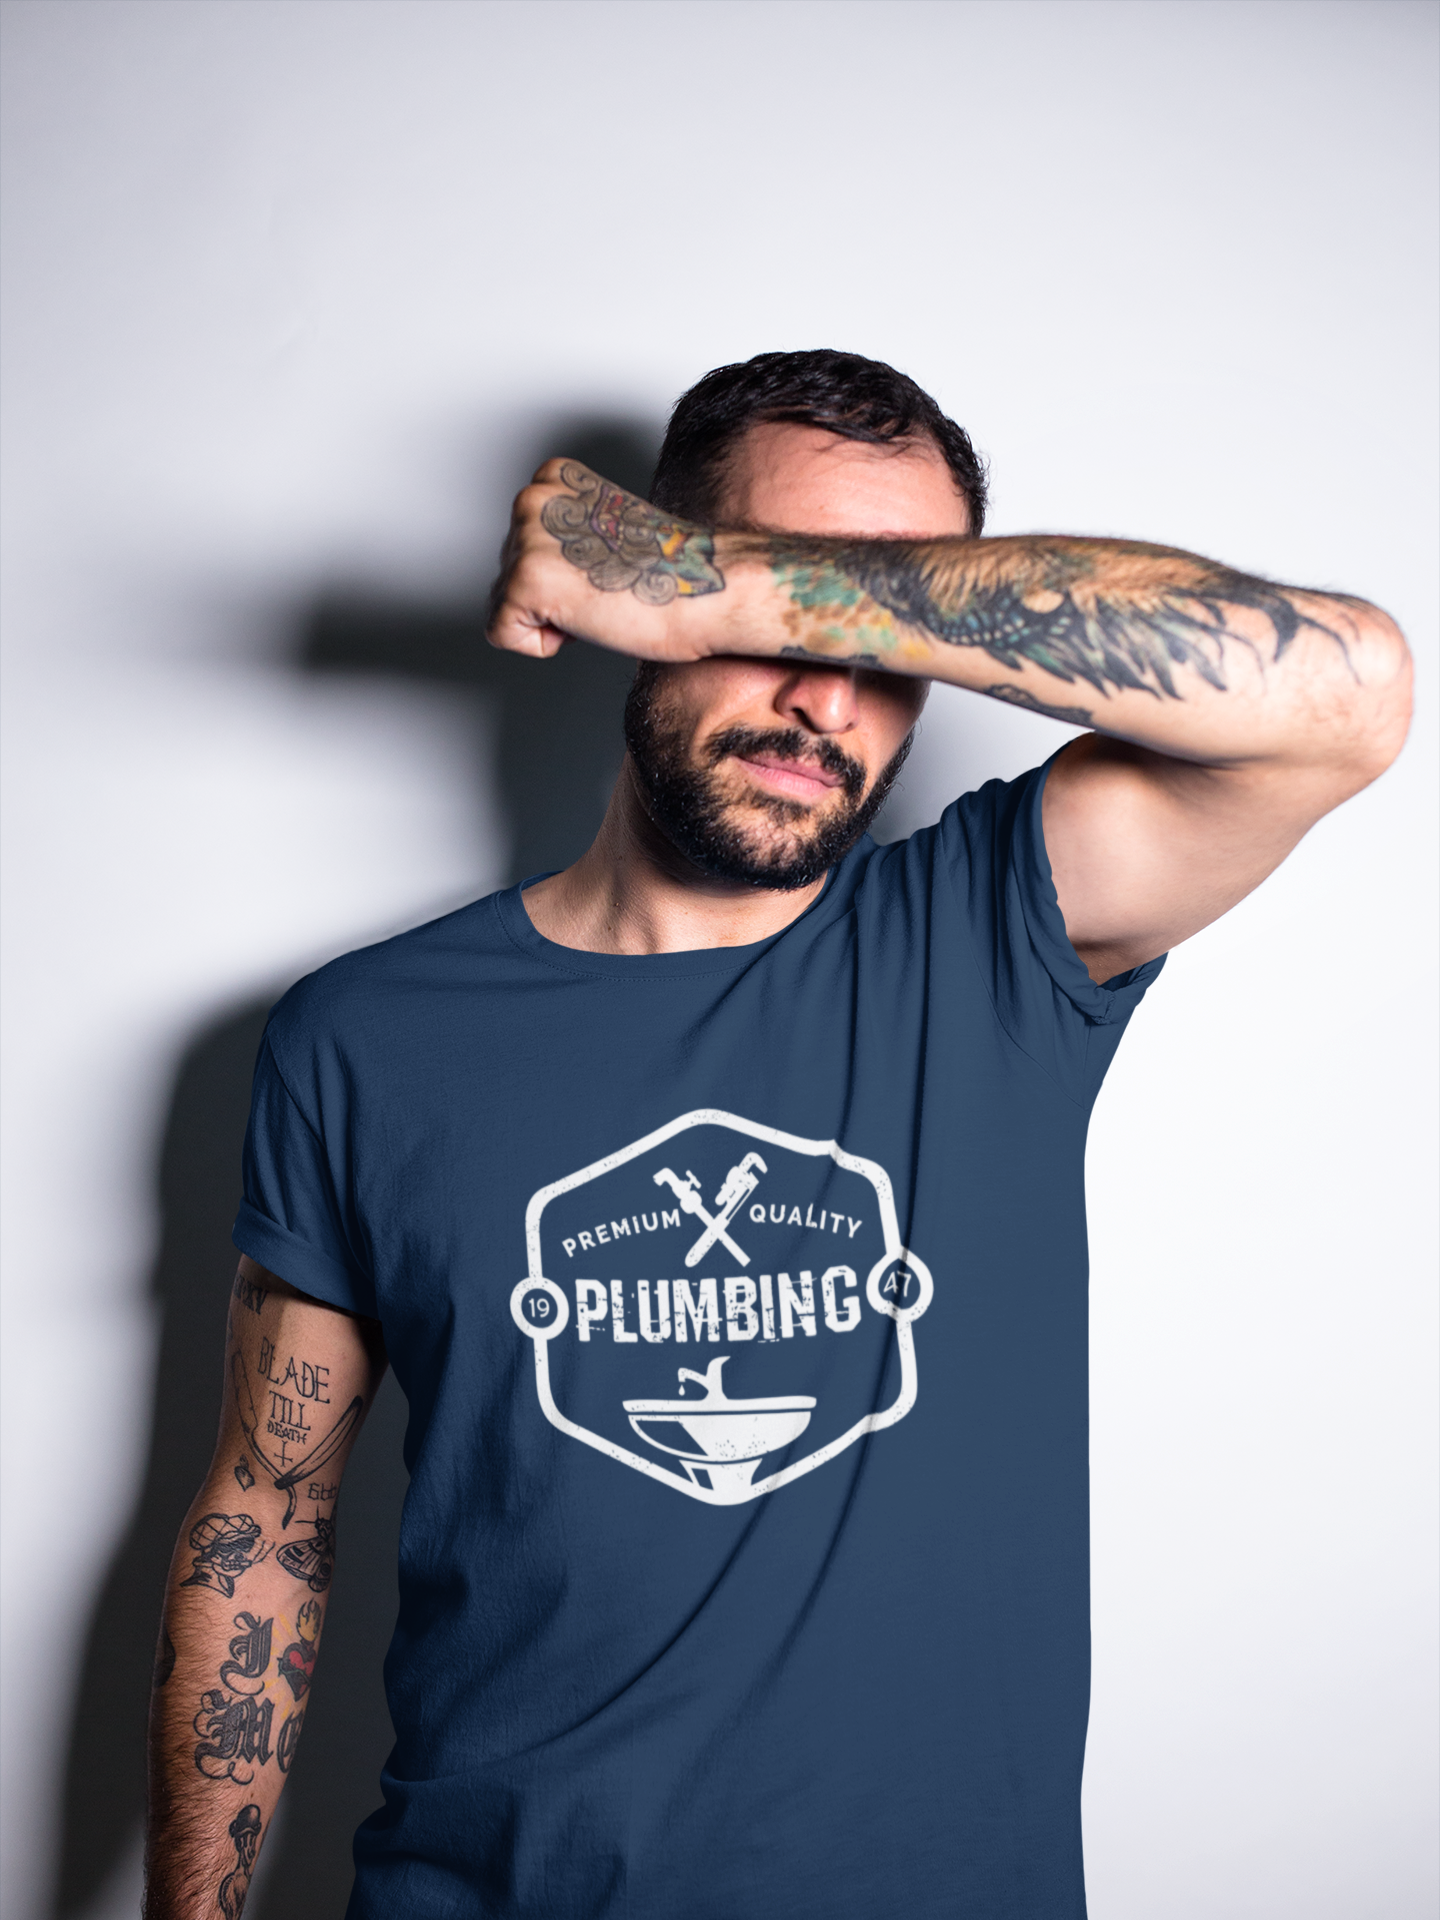 tattooed-man-covering-his-face-while-wearing-a-t-shirt-mockup-a17025.png